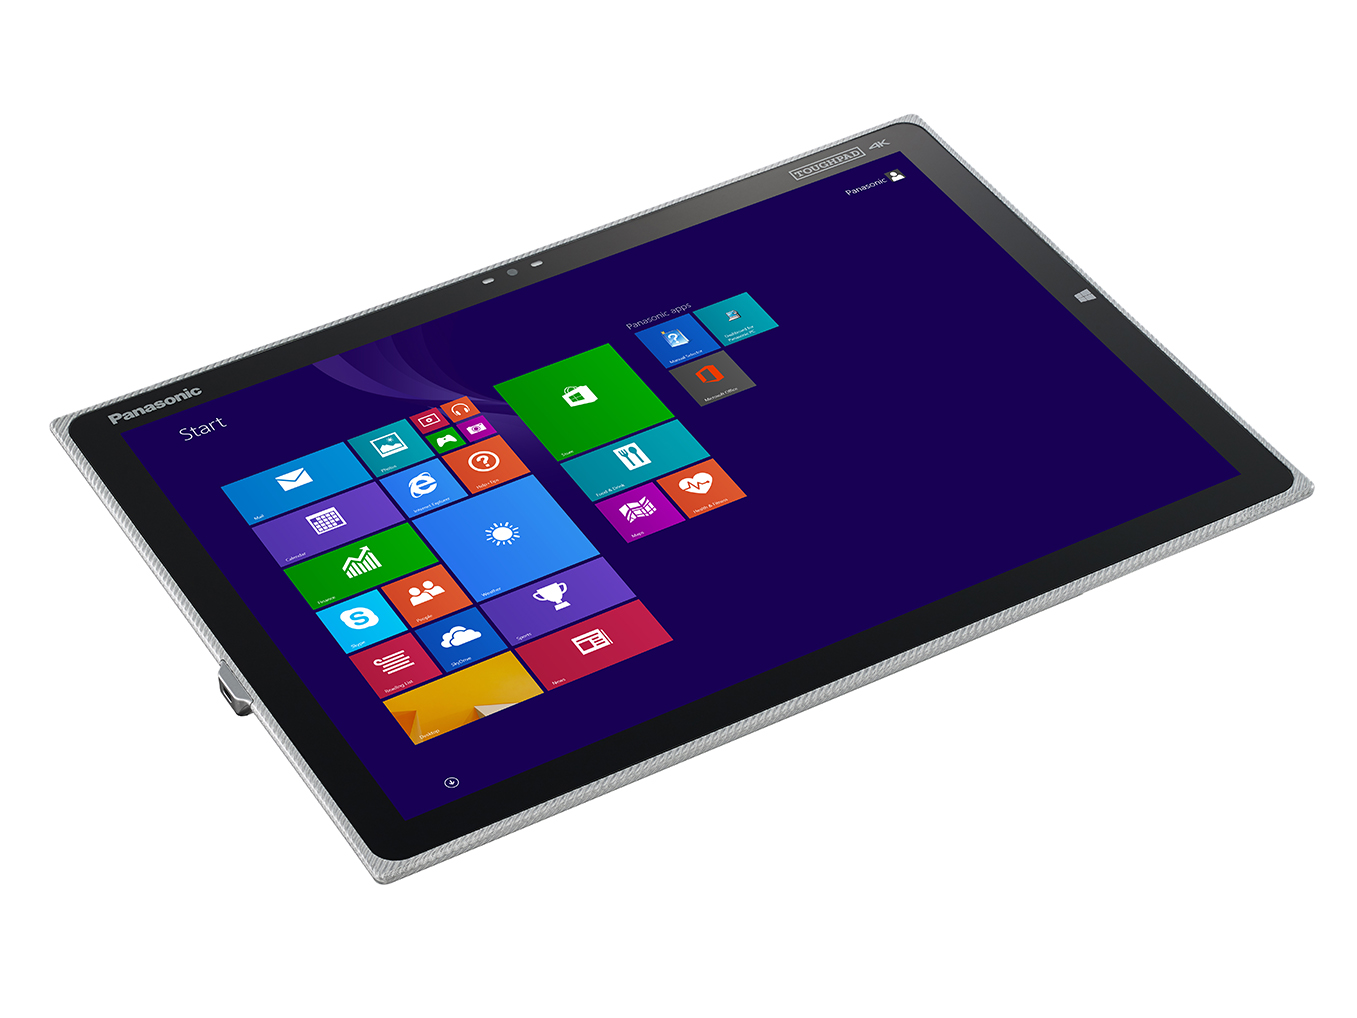 Panasonic Updates Toughpad 4k Tablet With Latest I5